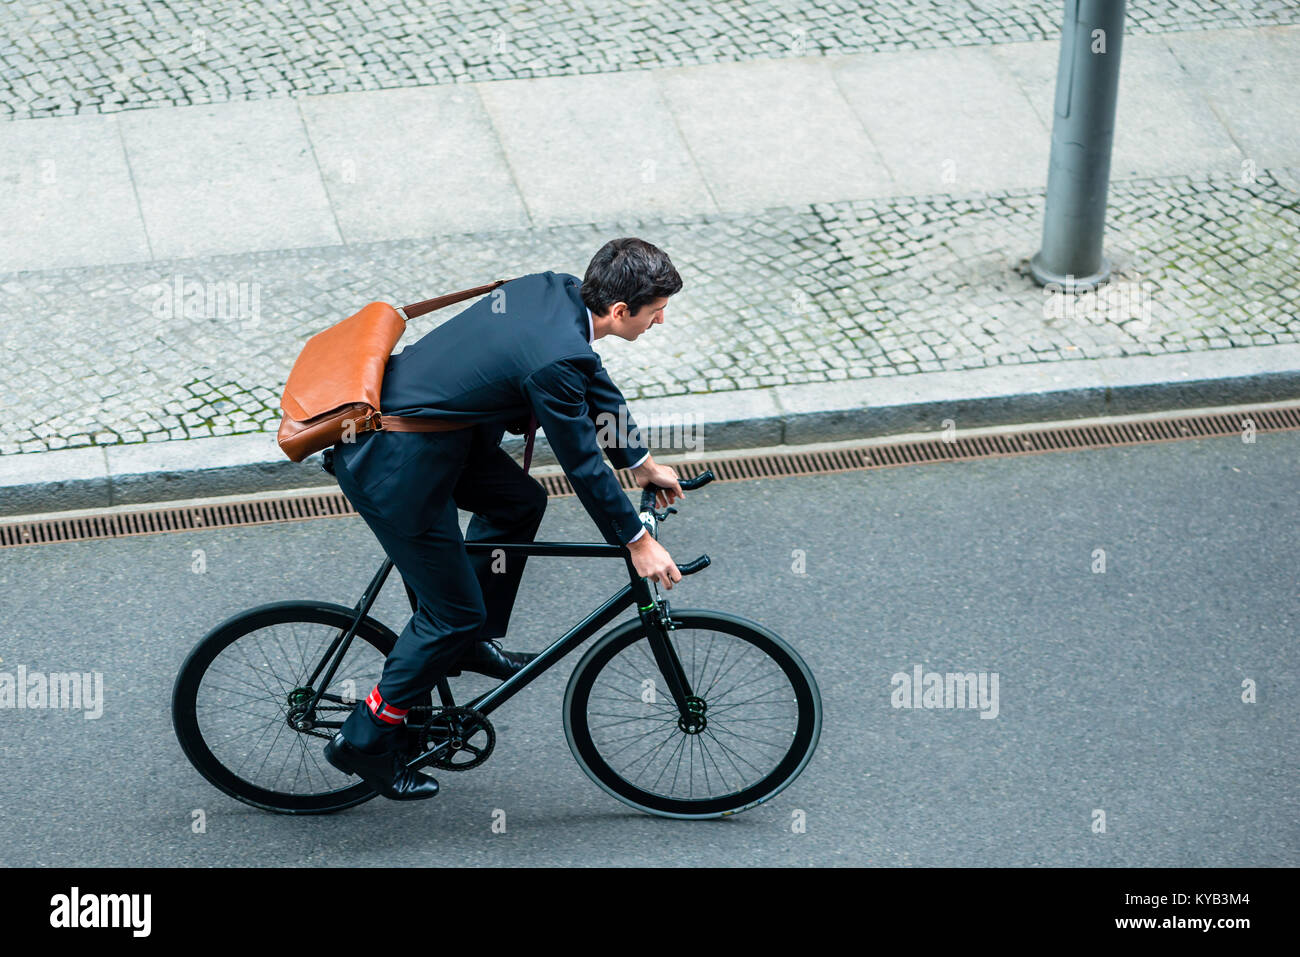 Young man wearing business suit while riding an utility bicycle - Stock Image